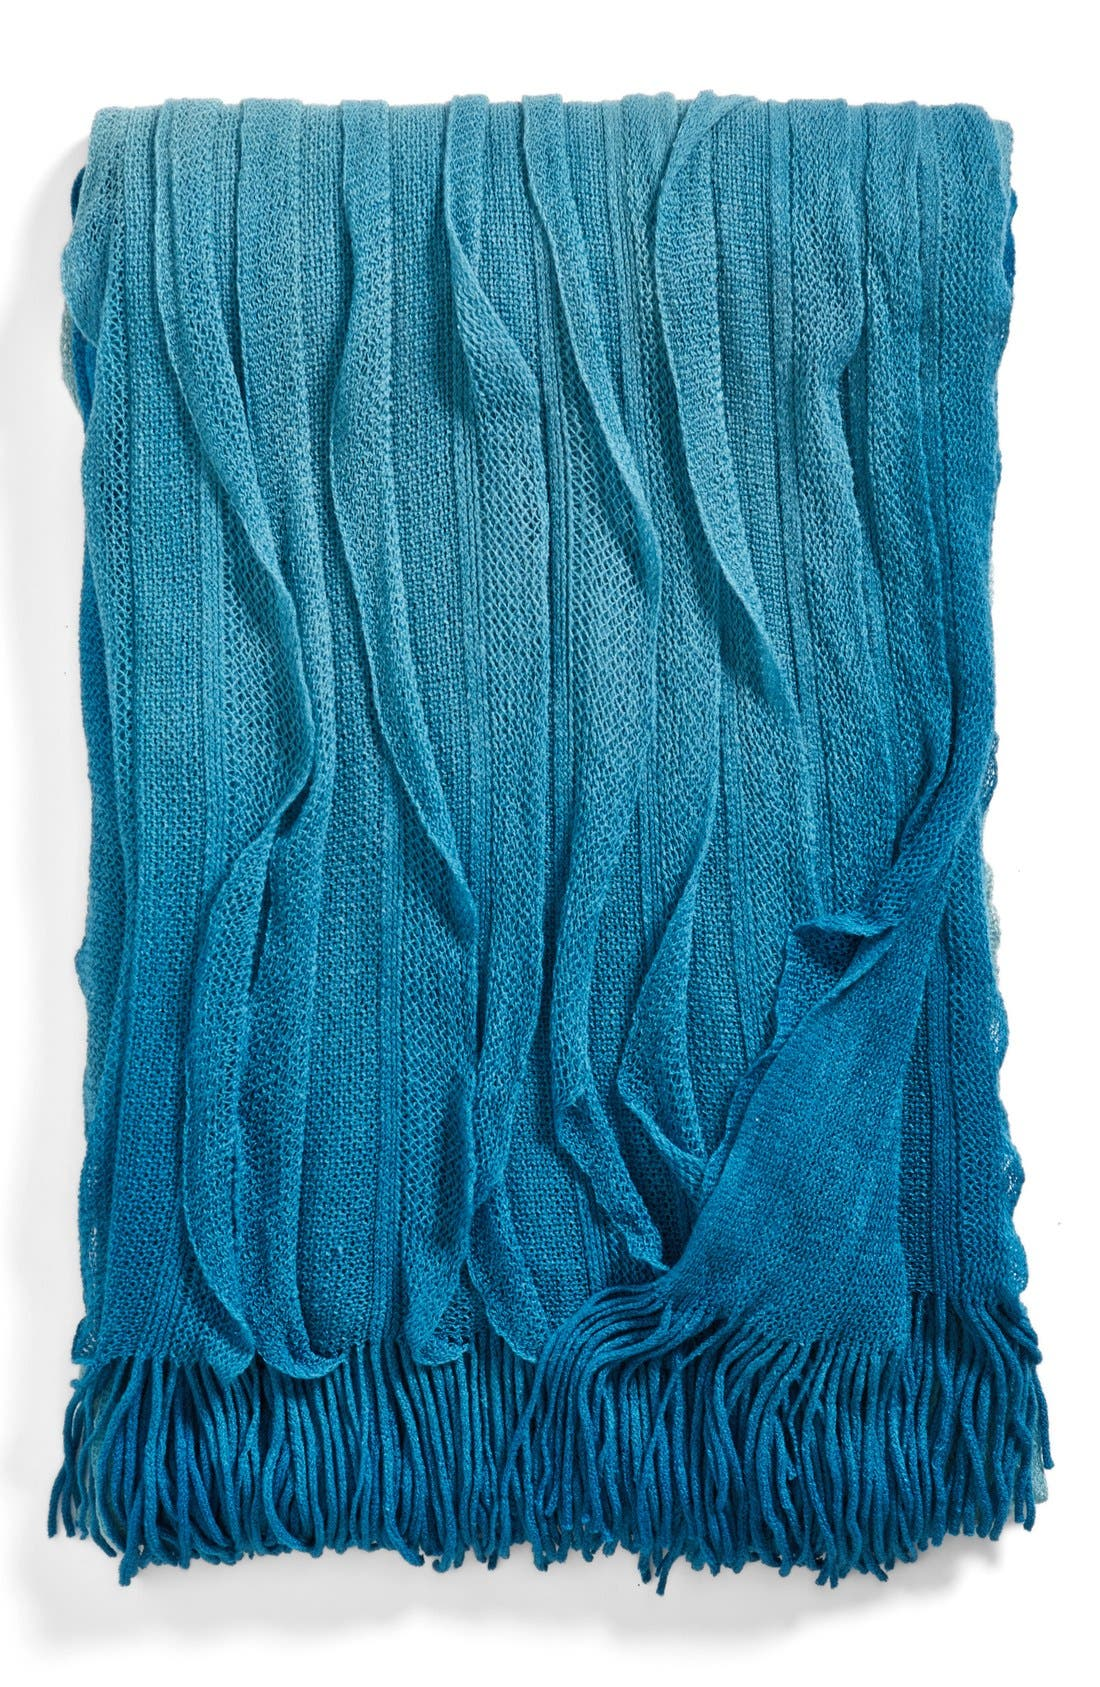 Alternate Image 1 Selected - Kennebunk Home Ombré Throw